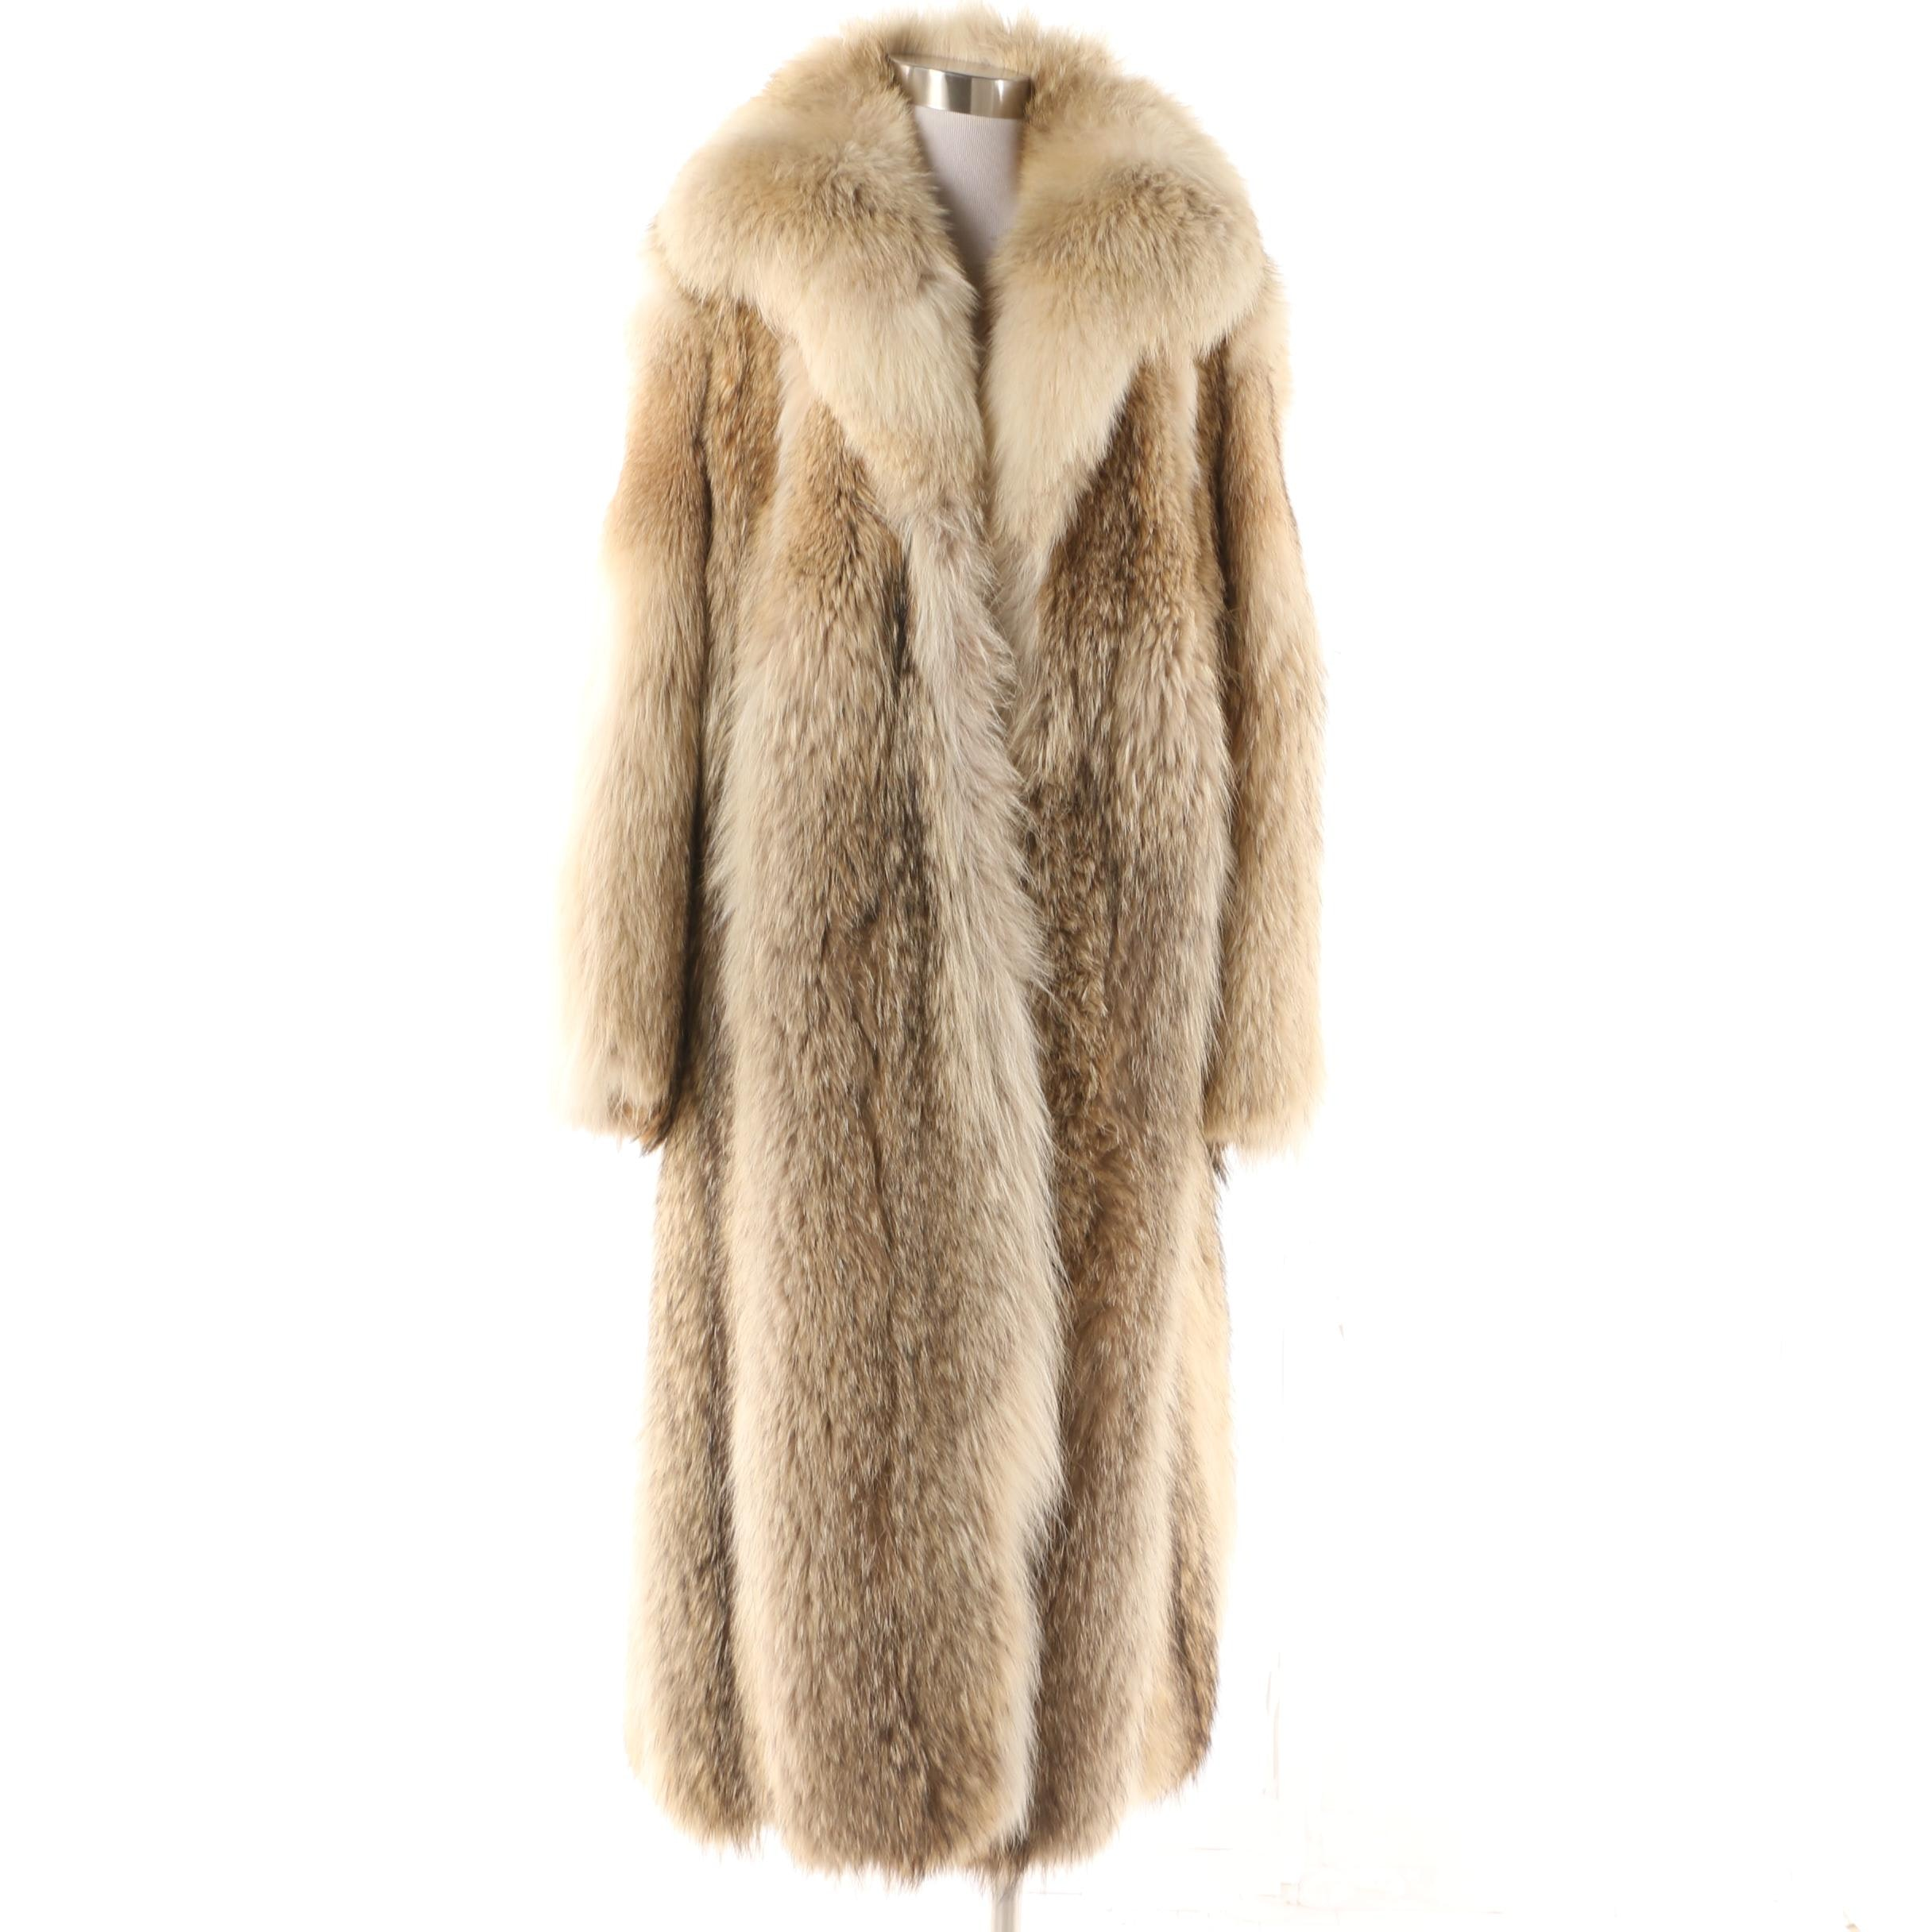 Women's Vintage Furs by Arnold Coyote Fur Coat